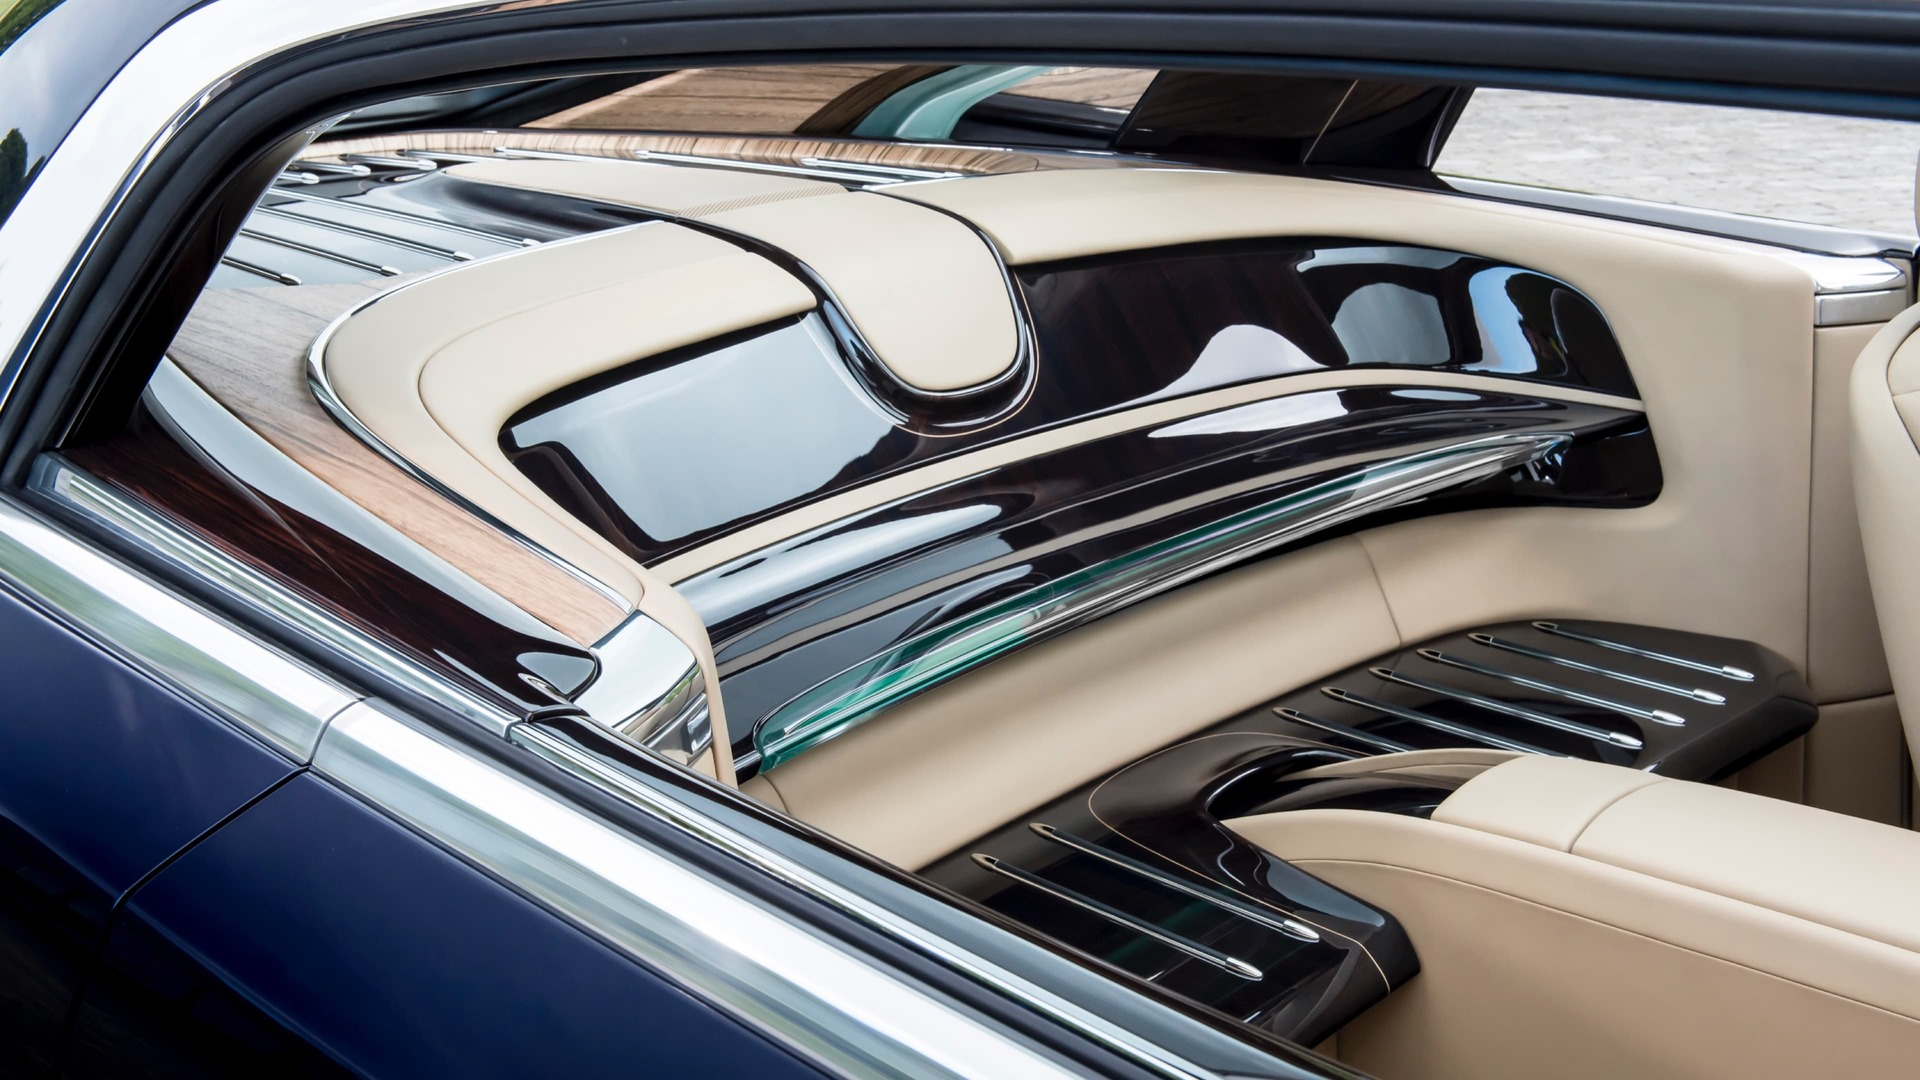 Interior view of Rolls-Royce Sweptail